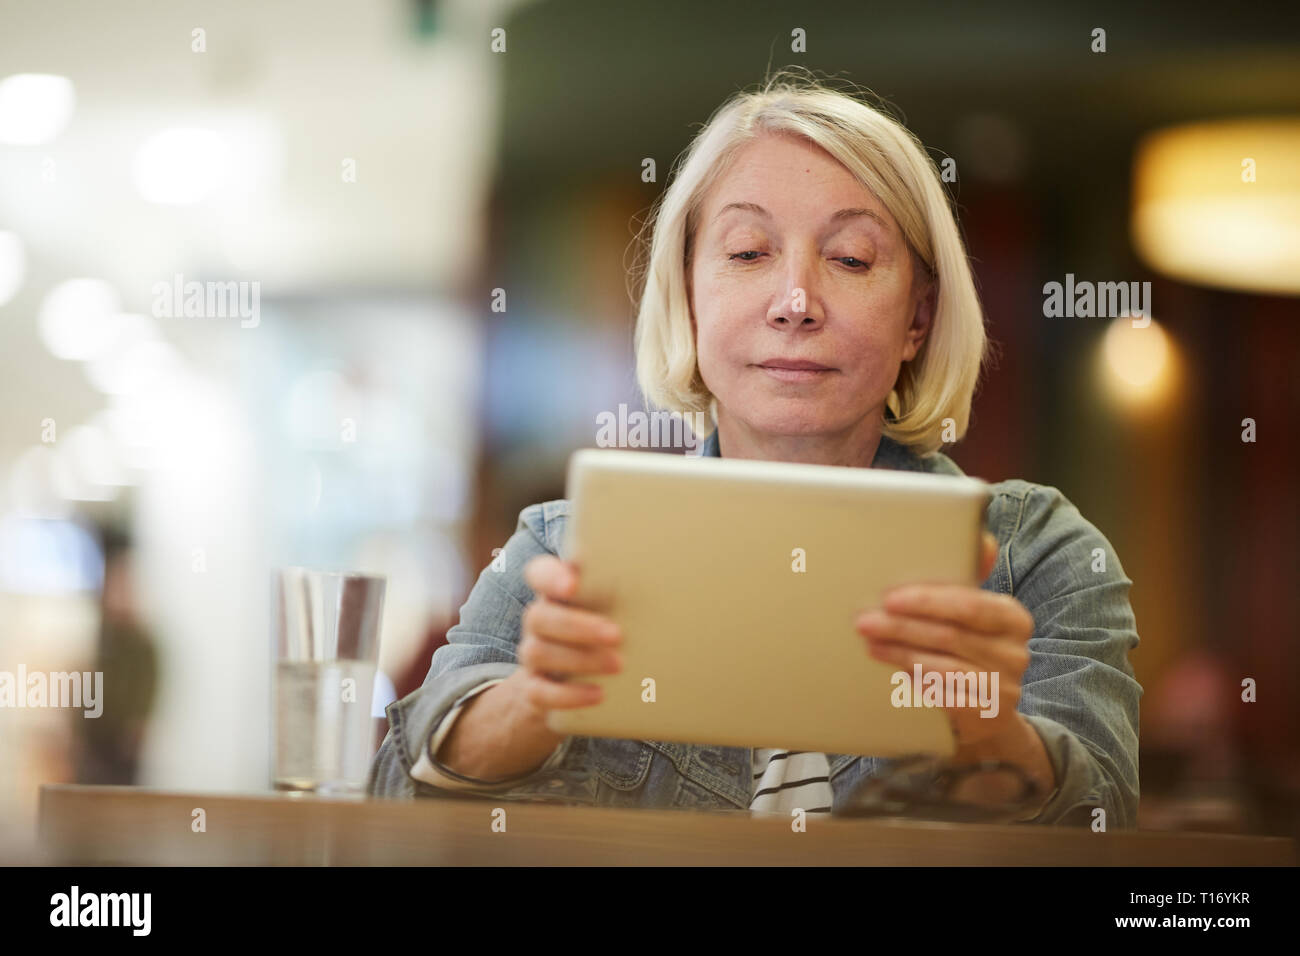 Pensive lady watching video on tablet - Stock Image